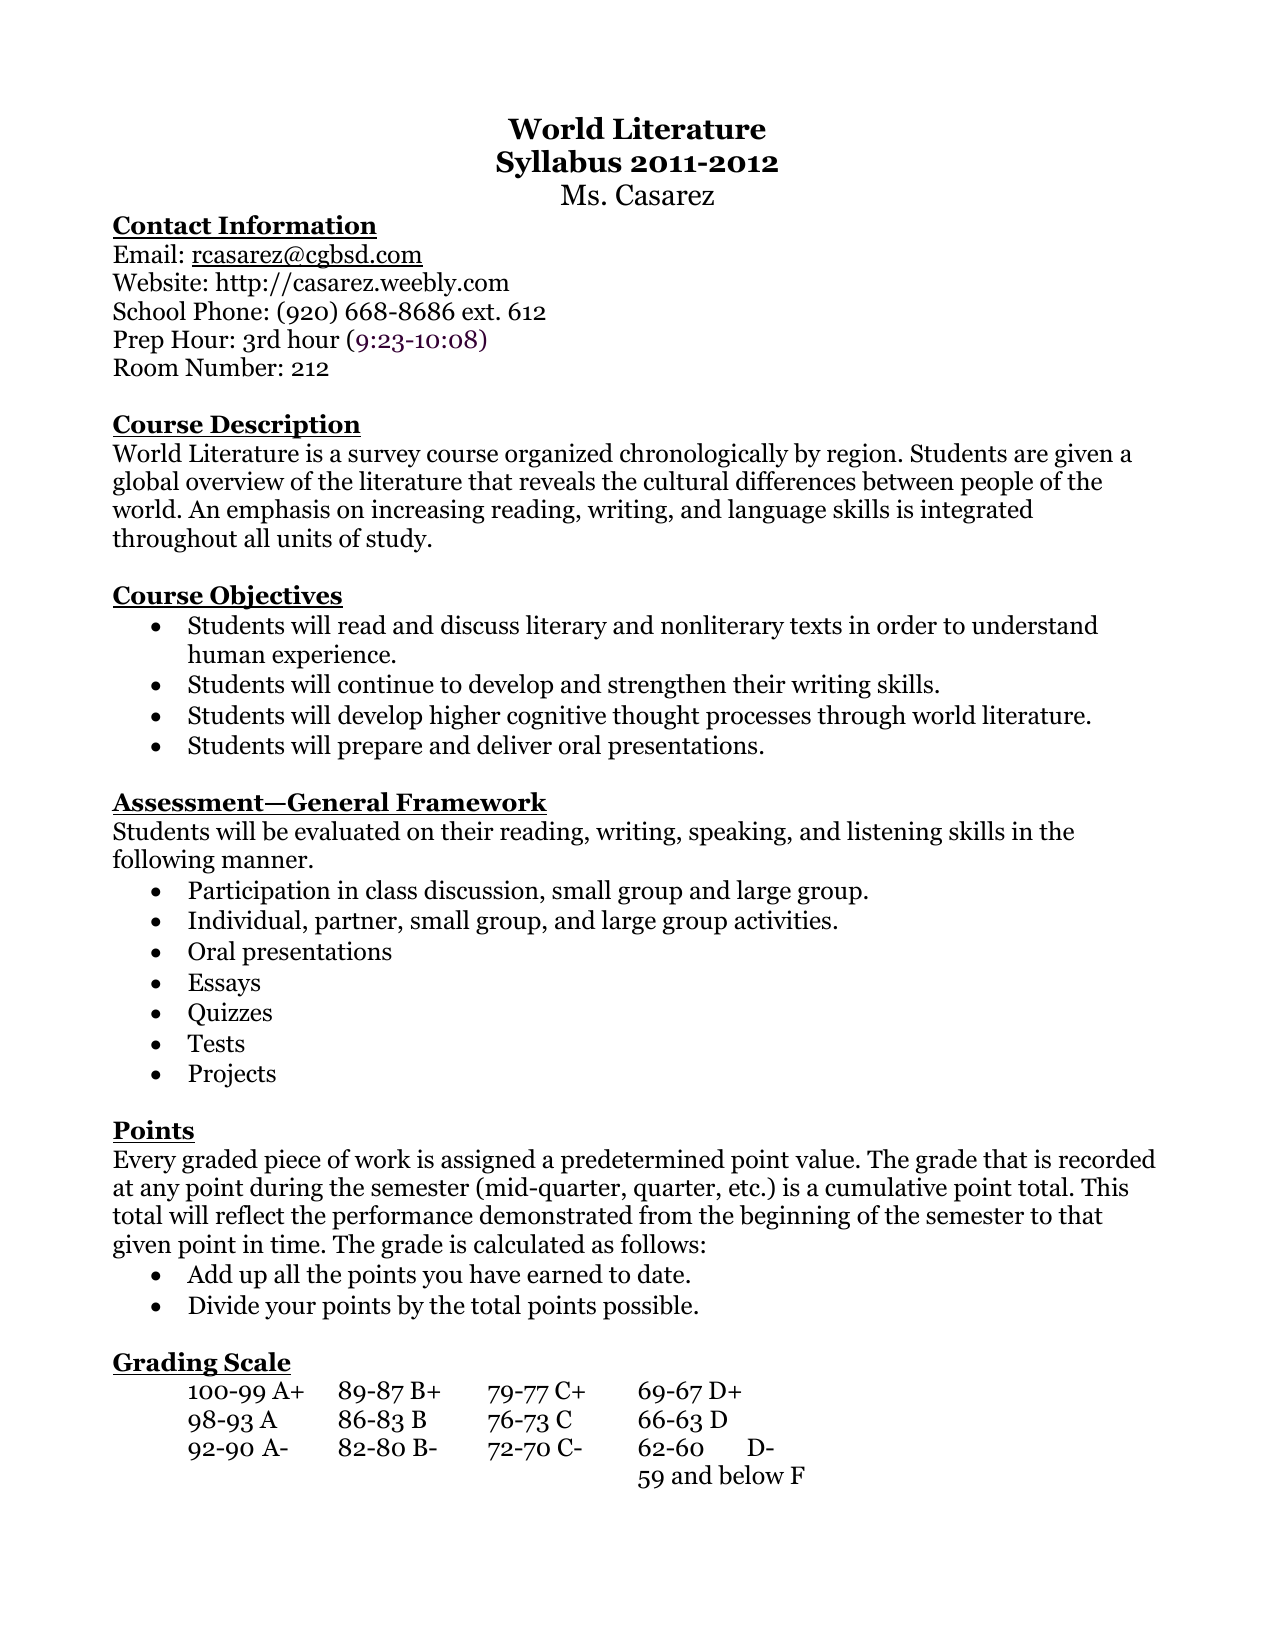 ib world literature essay format Ib world literature assignment 1 advice to students writing ib world literature essays  plus a brief preview of your conclusion using a format prescribed by.